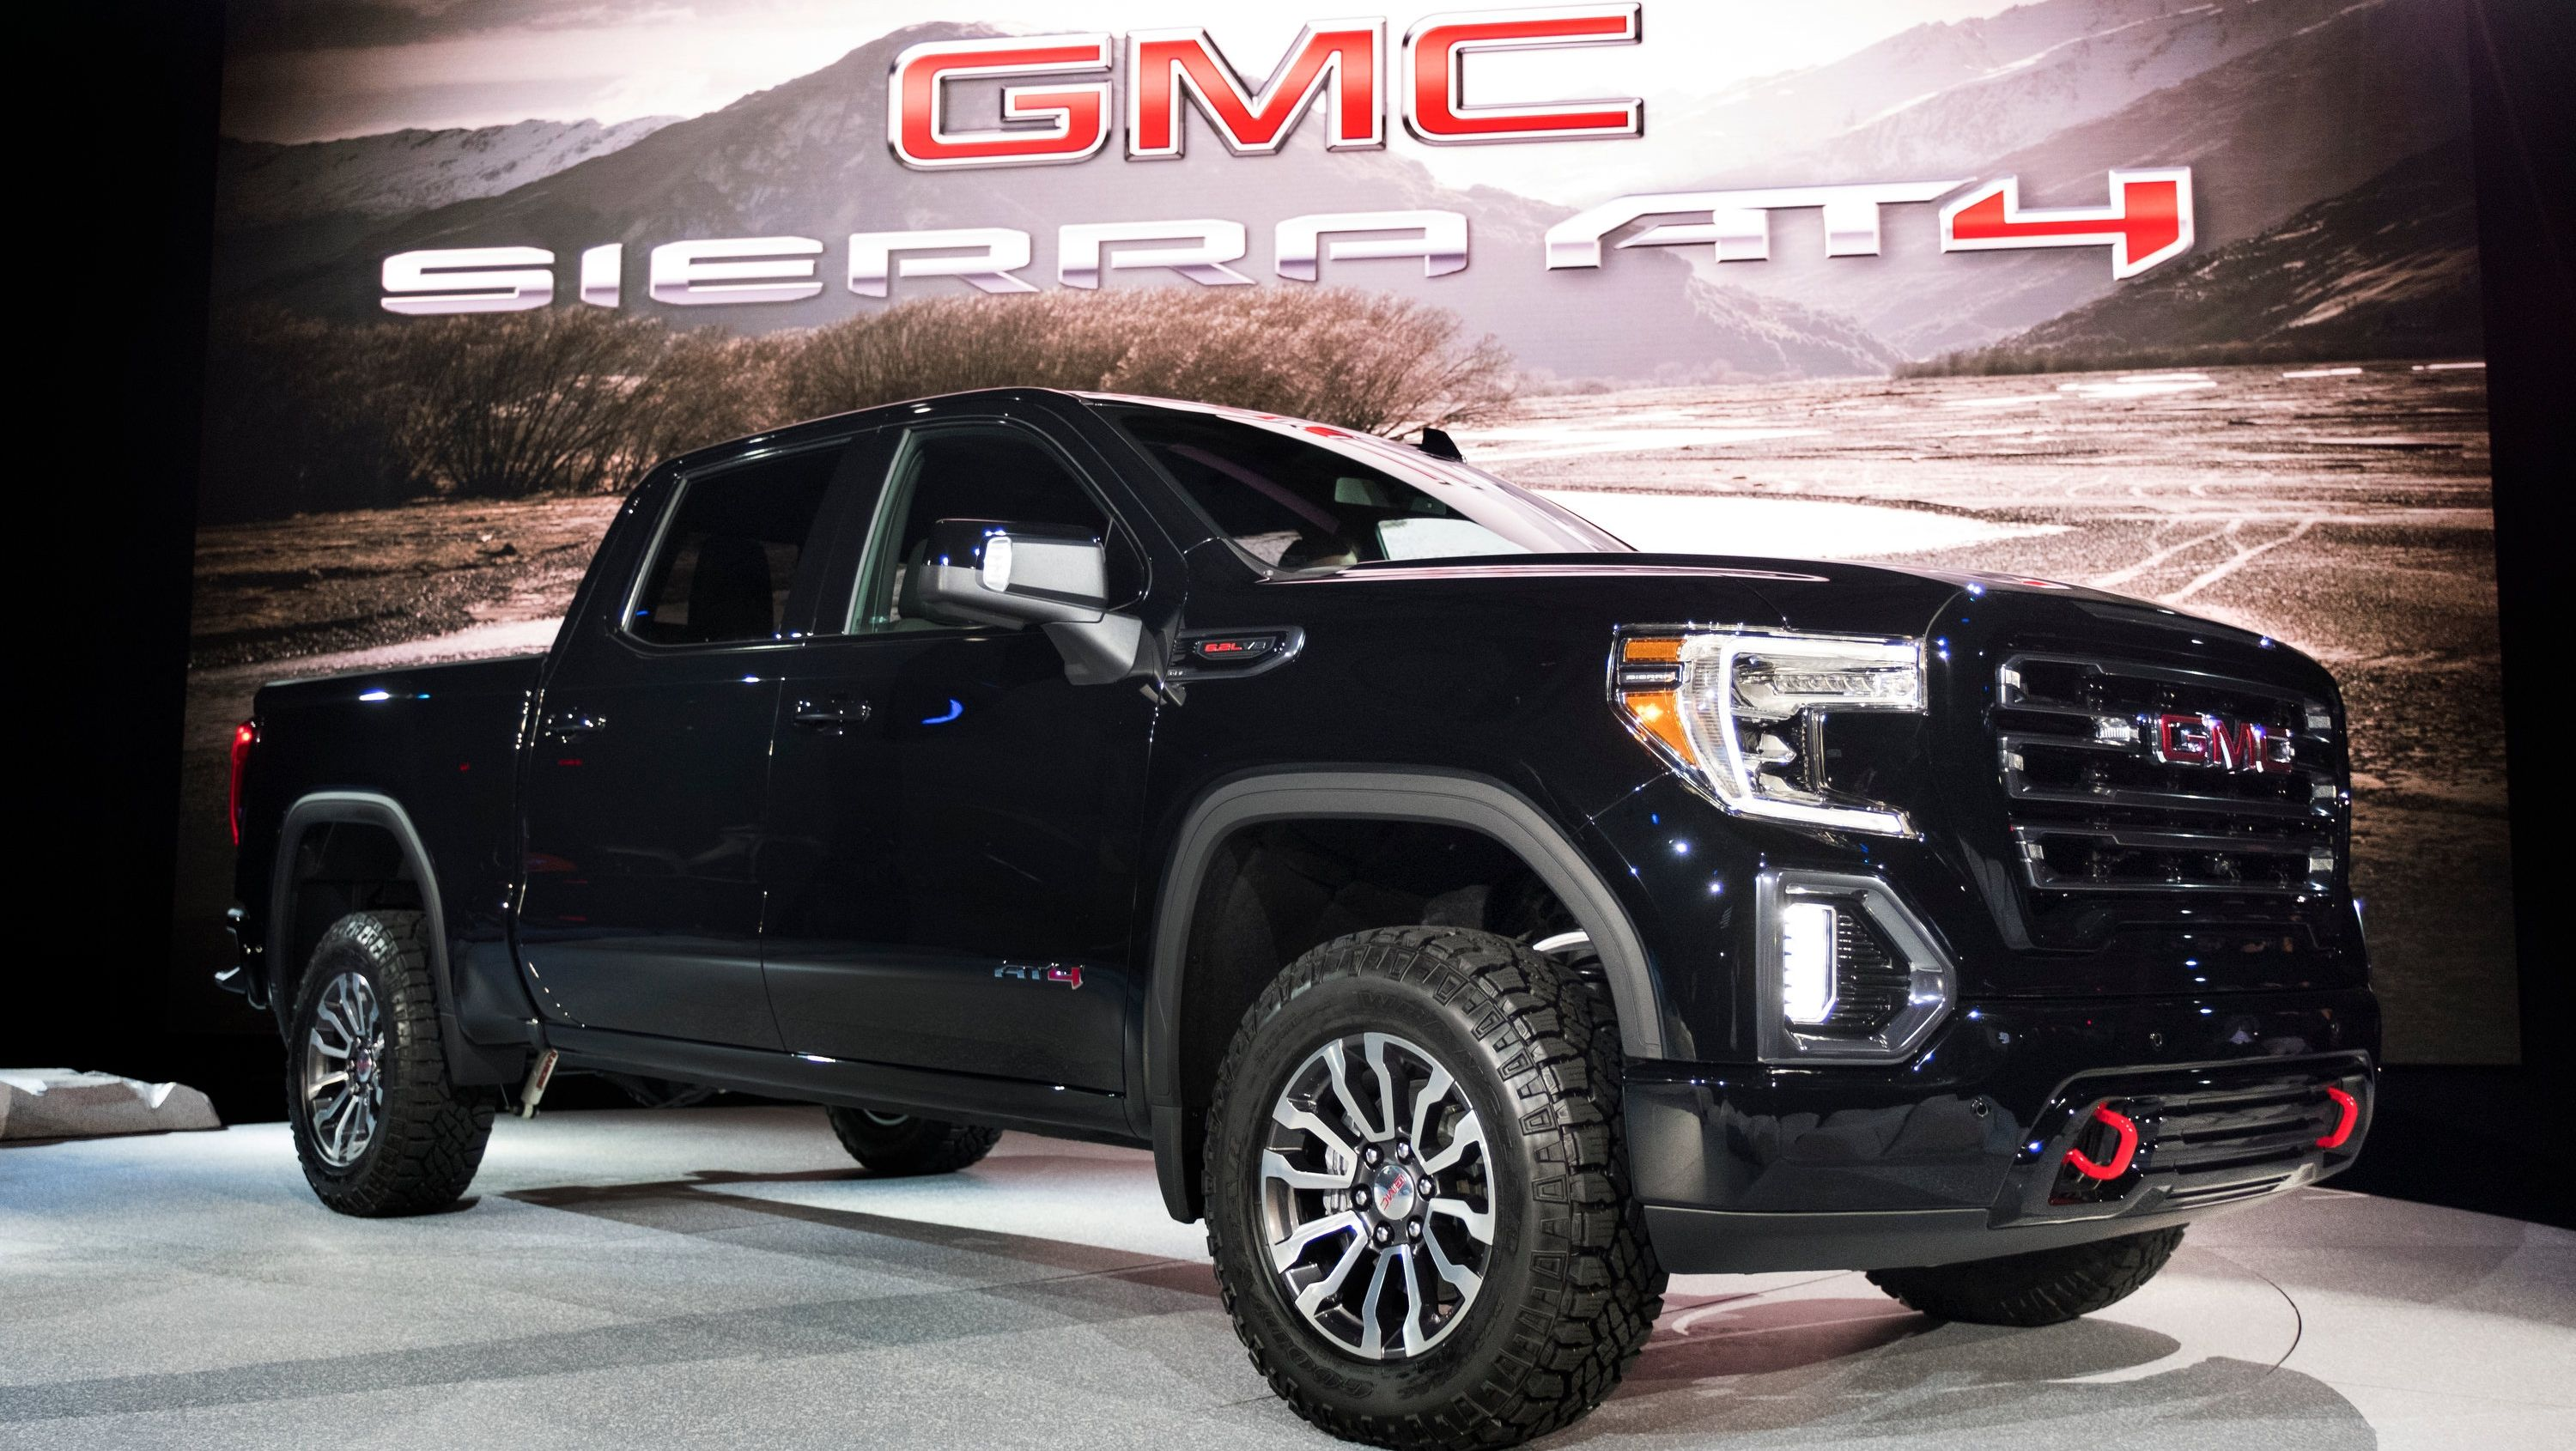 The Gmc Sierra At4 Is Here To Put The Hurt On The Ford F 150 Raptor Ram Power Wagon And The Toyota Tundra Trd Pro Top Speed Gmc Trucks New Trucks Gmc